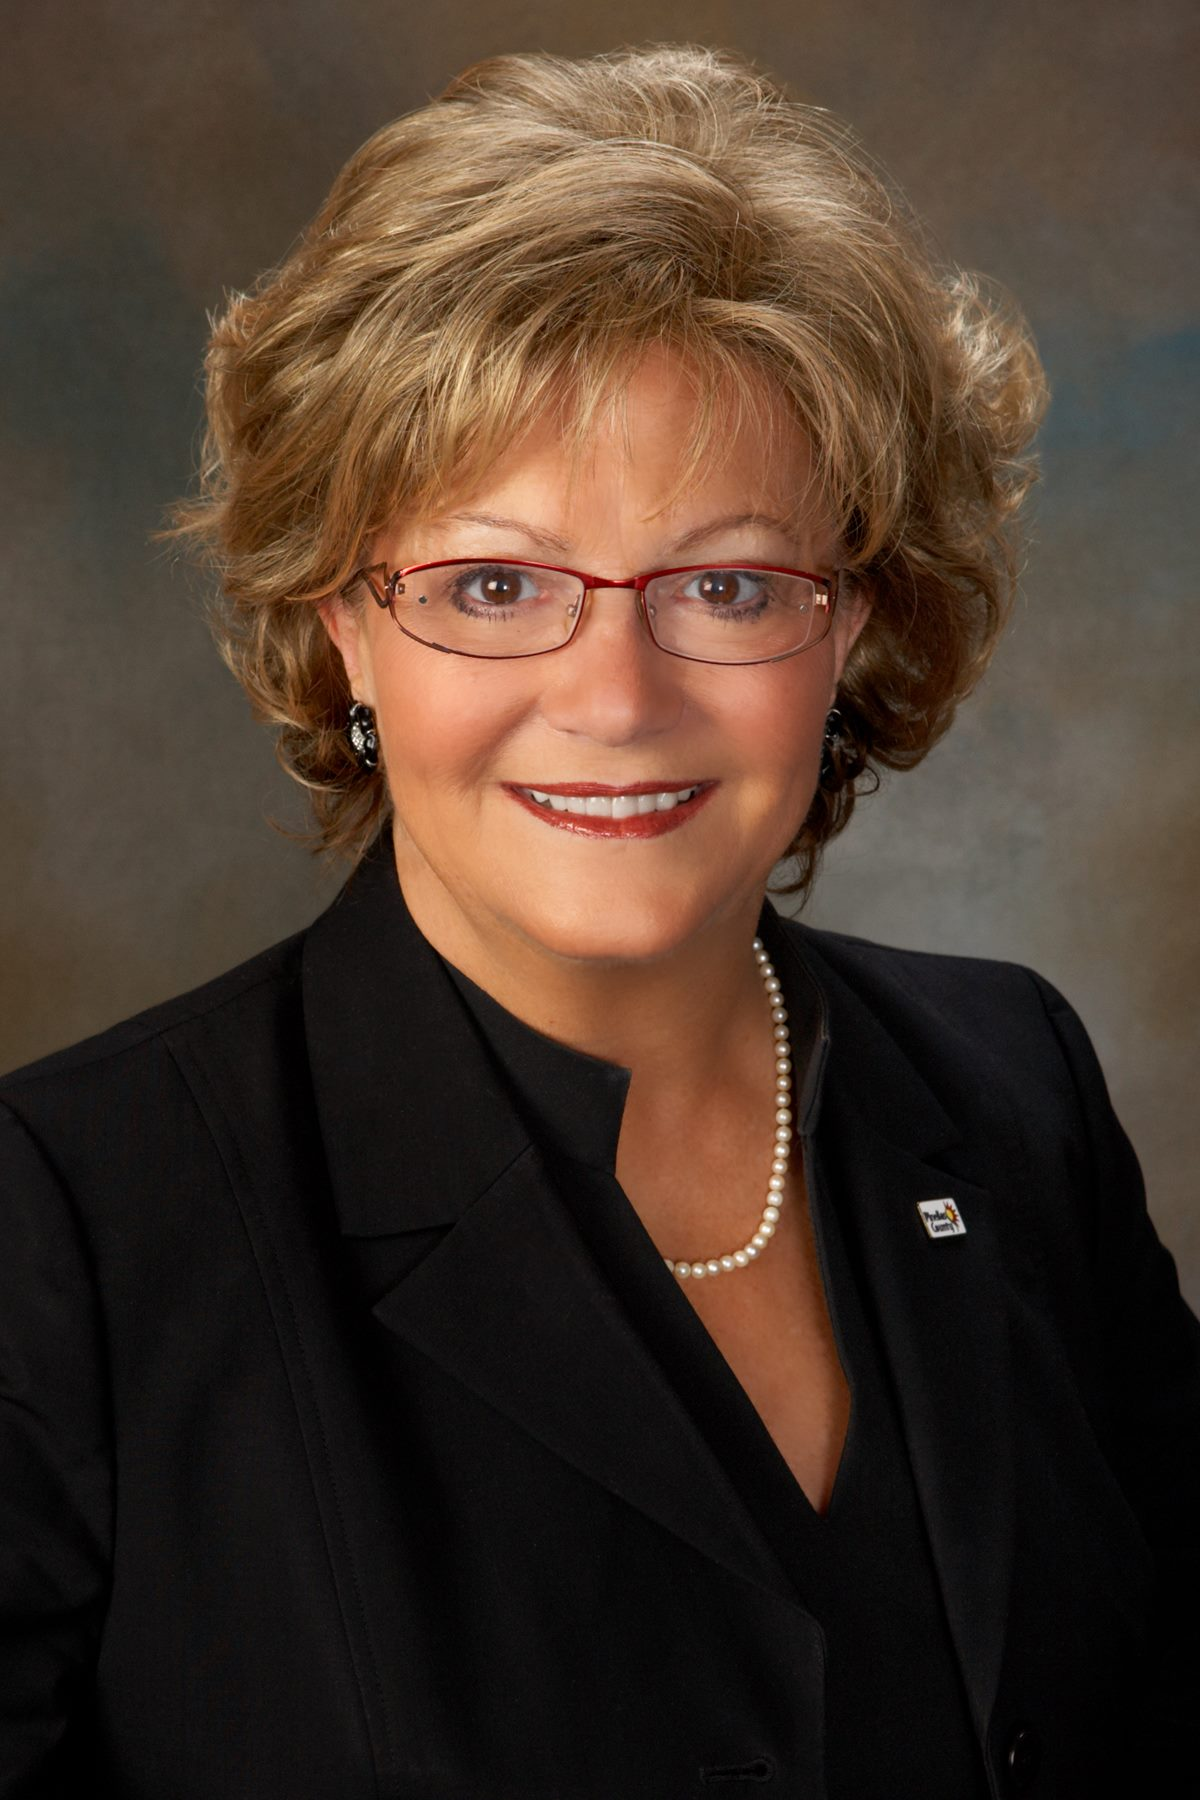 A head shot of a woman in glasses and a black suit.